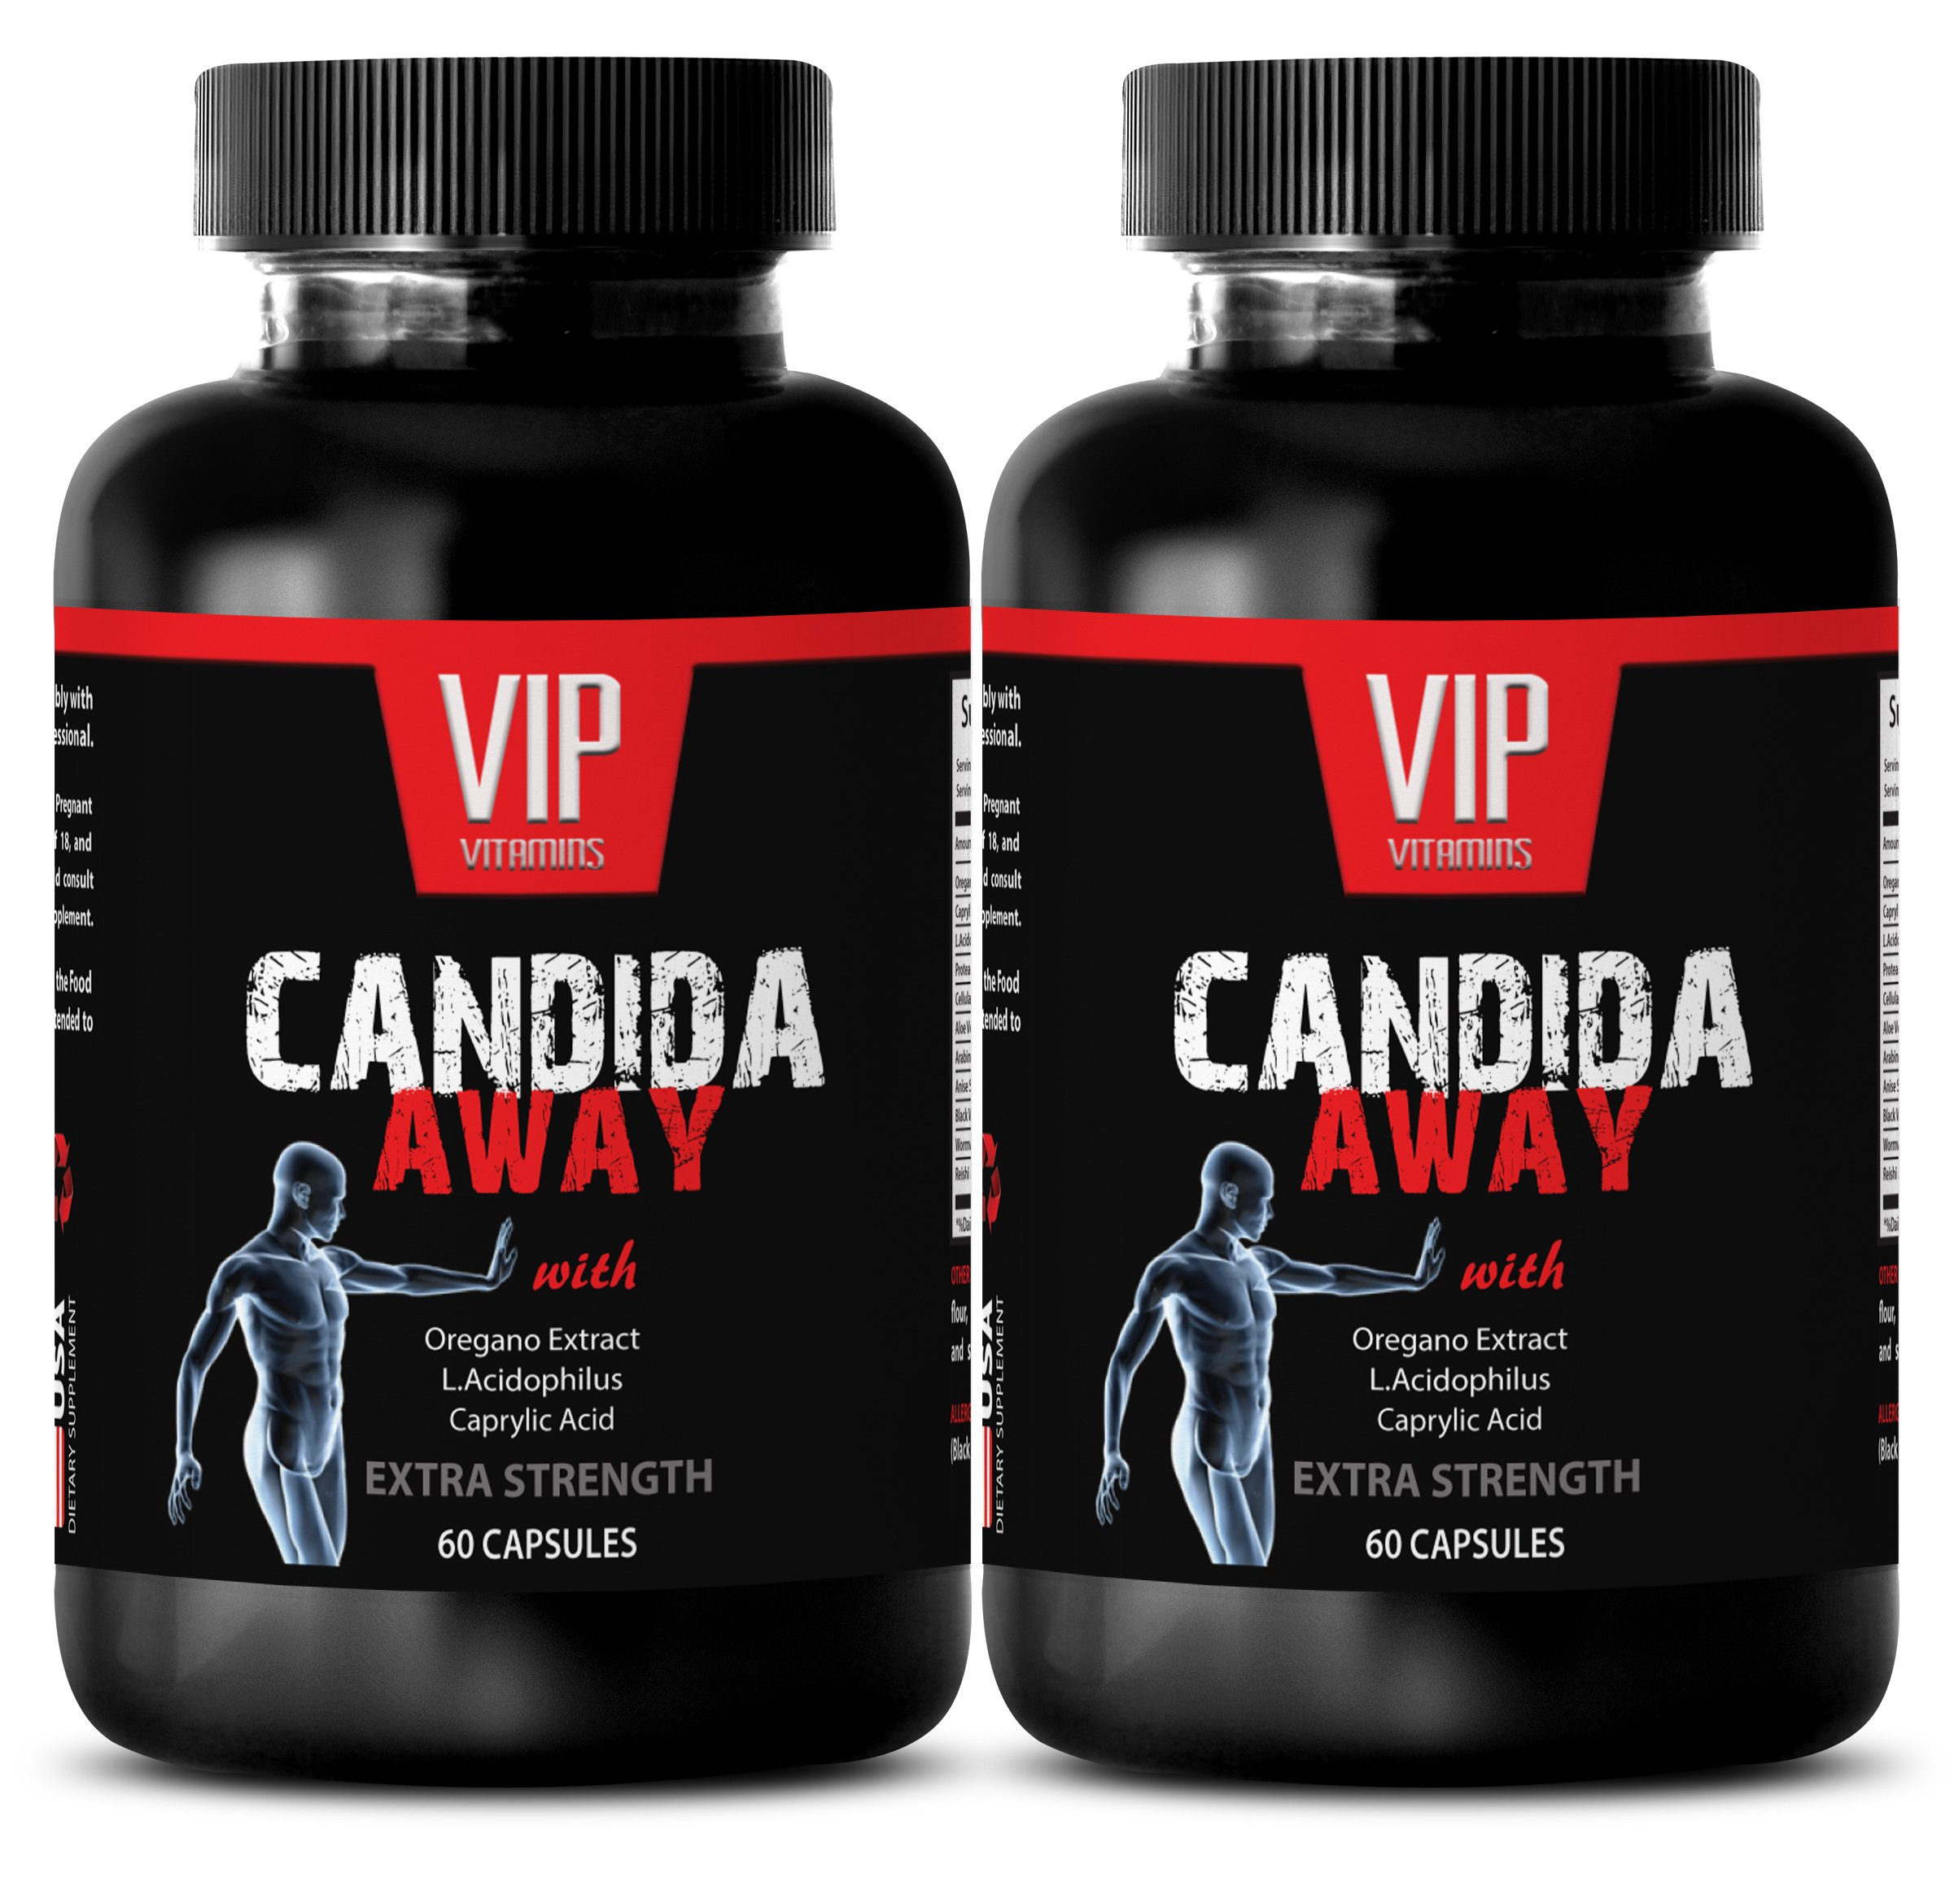 antioxidant all in one - CANDIDA AWAY - EXTRA STRENGTH - candida digest - 2 Bottles (120 Capsules)